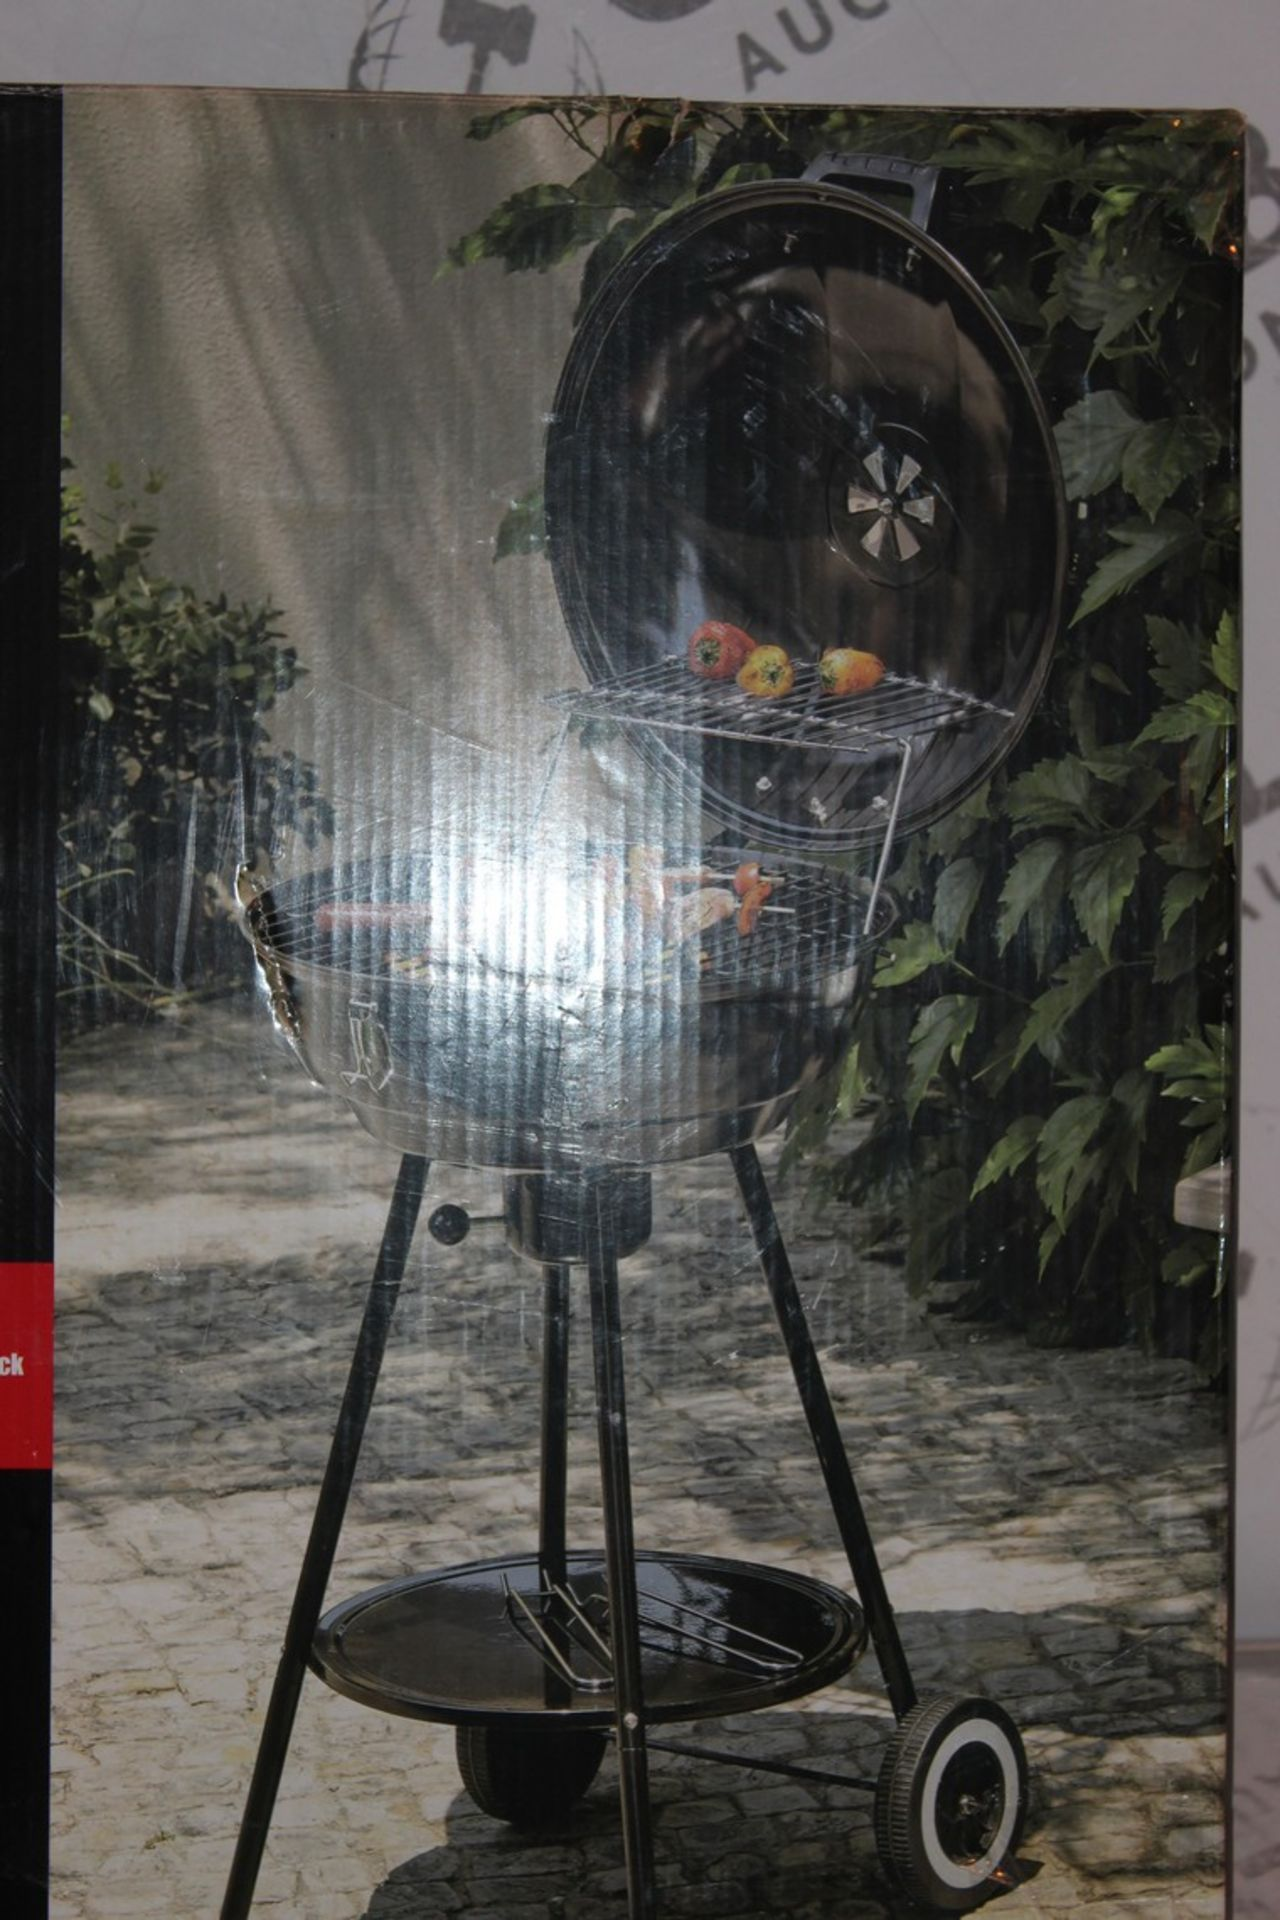 Lot 7 - Boxed Expert Grill 43cm Kettle BBQ RRP £65 (Public Viewing and Appraisals Available)